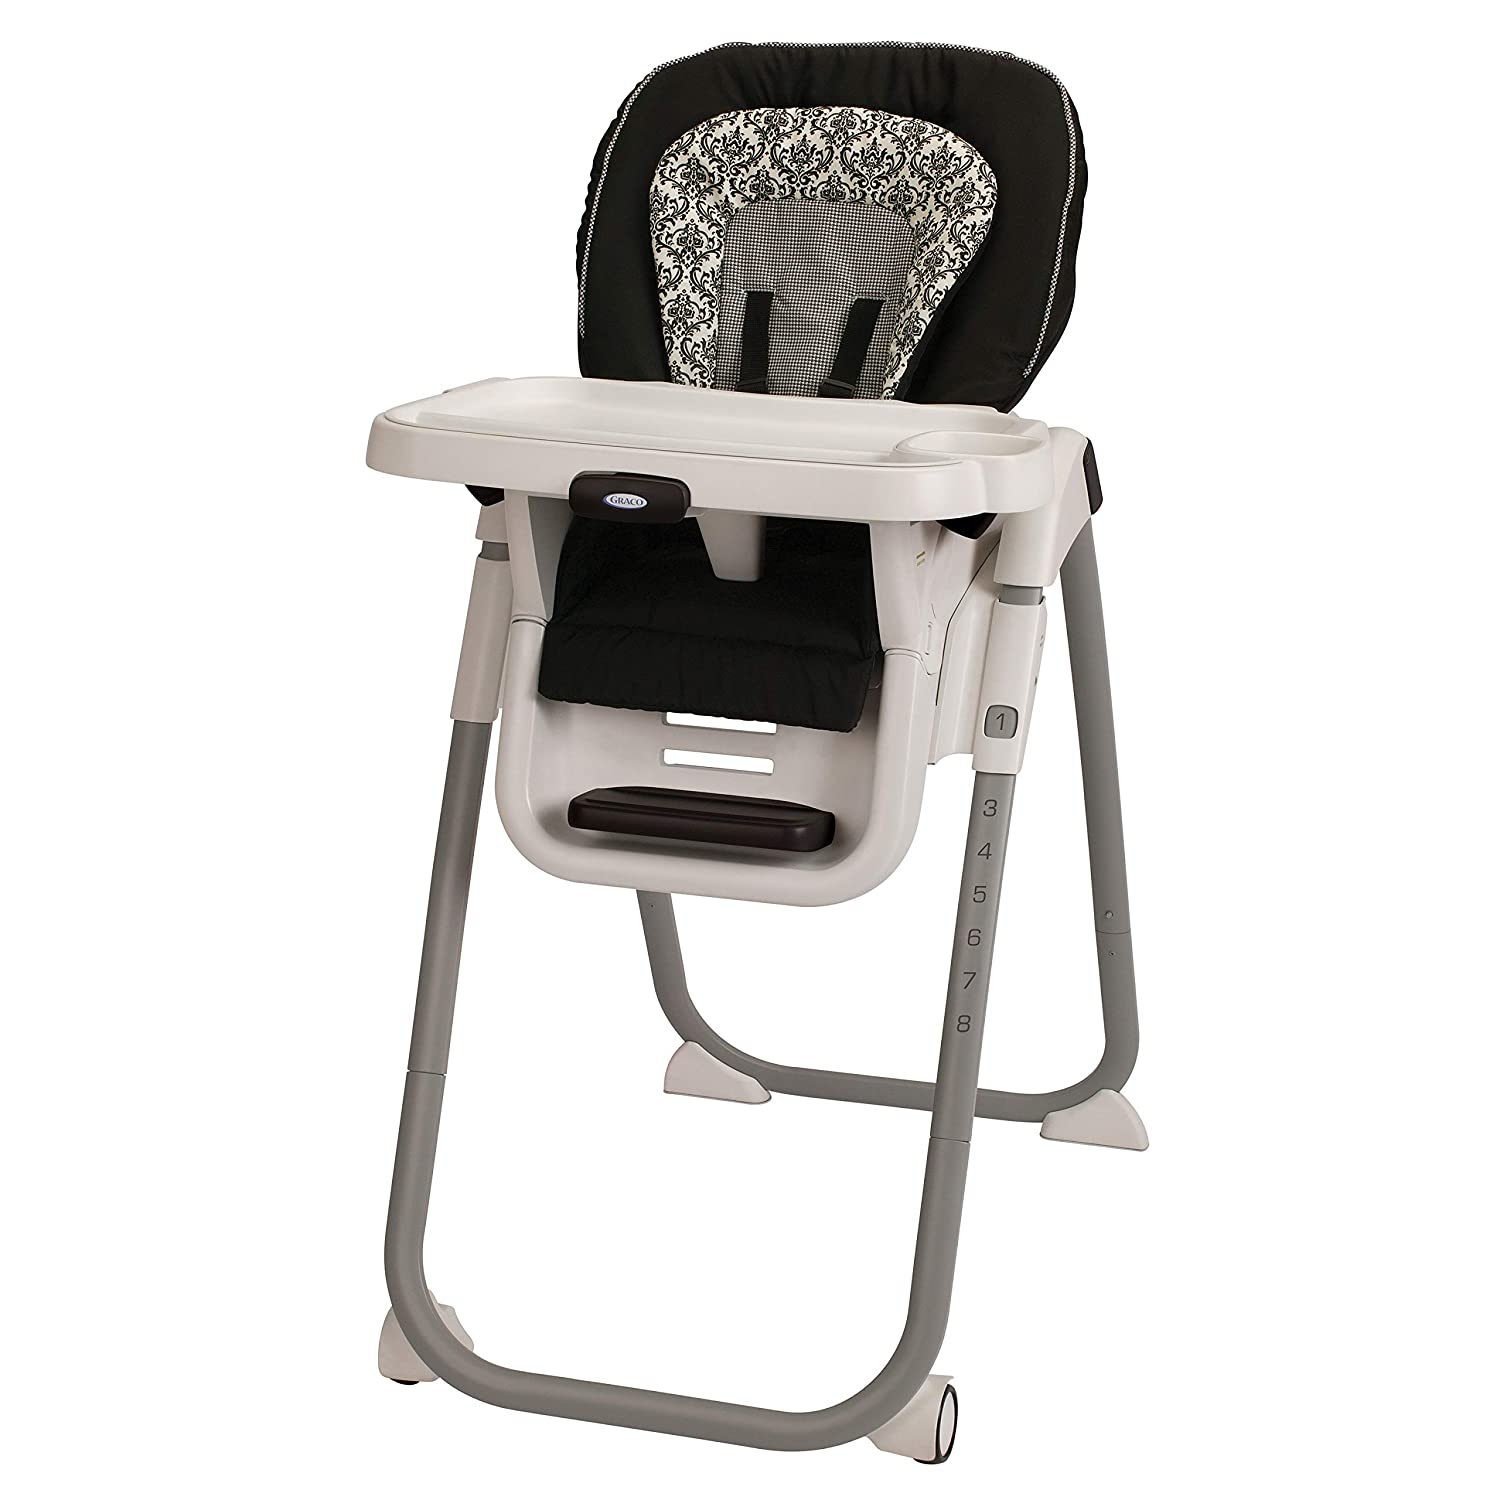 Graco TableFit Rittenhouse High Chair, Black/White